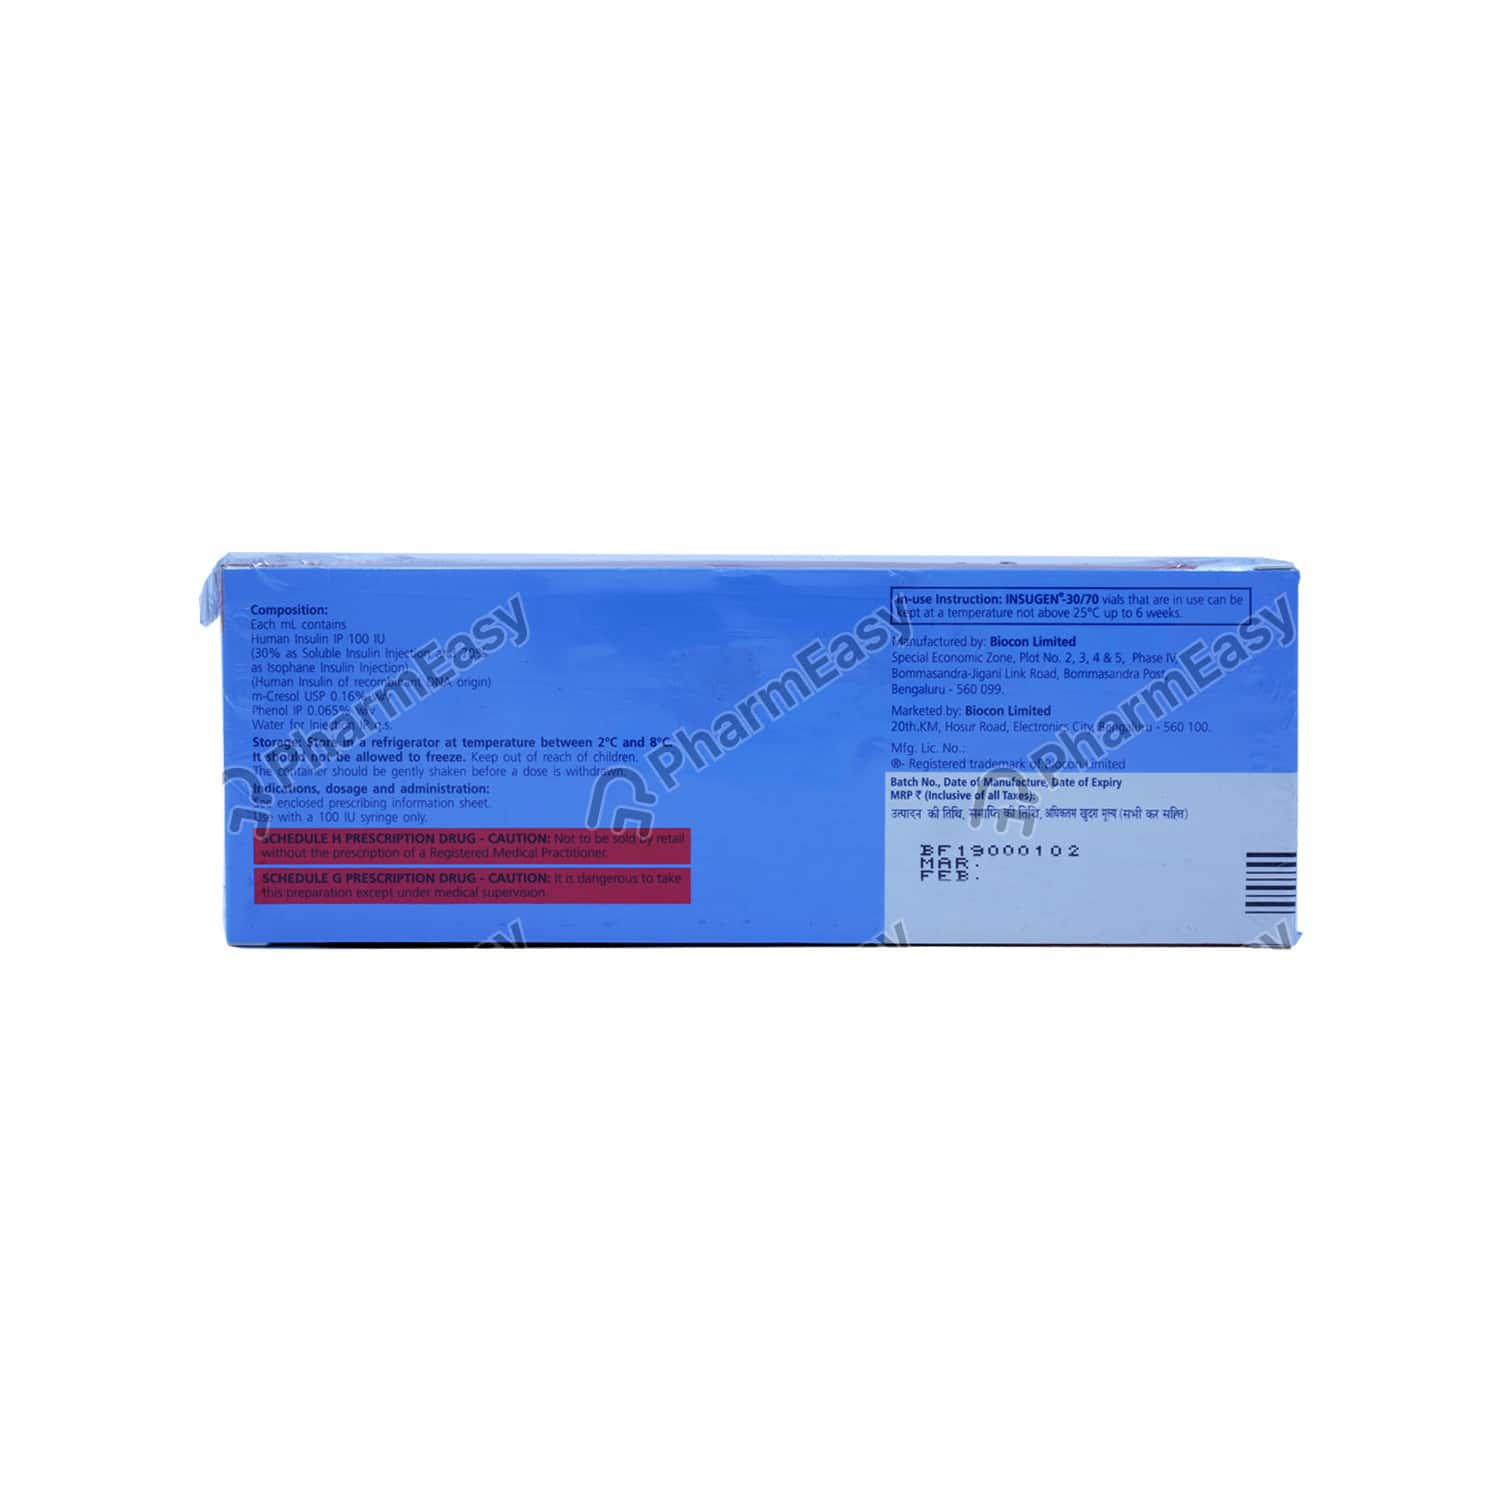 Insugen 30/70 100iu Injection 10ml